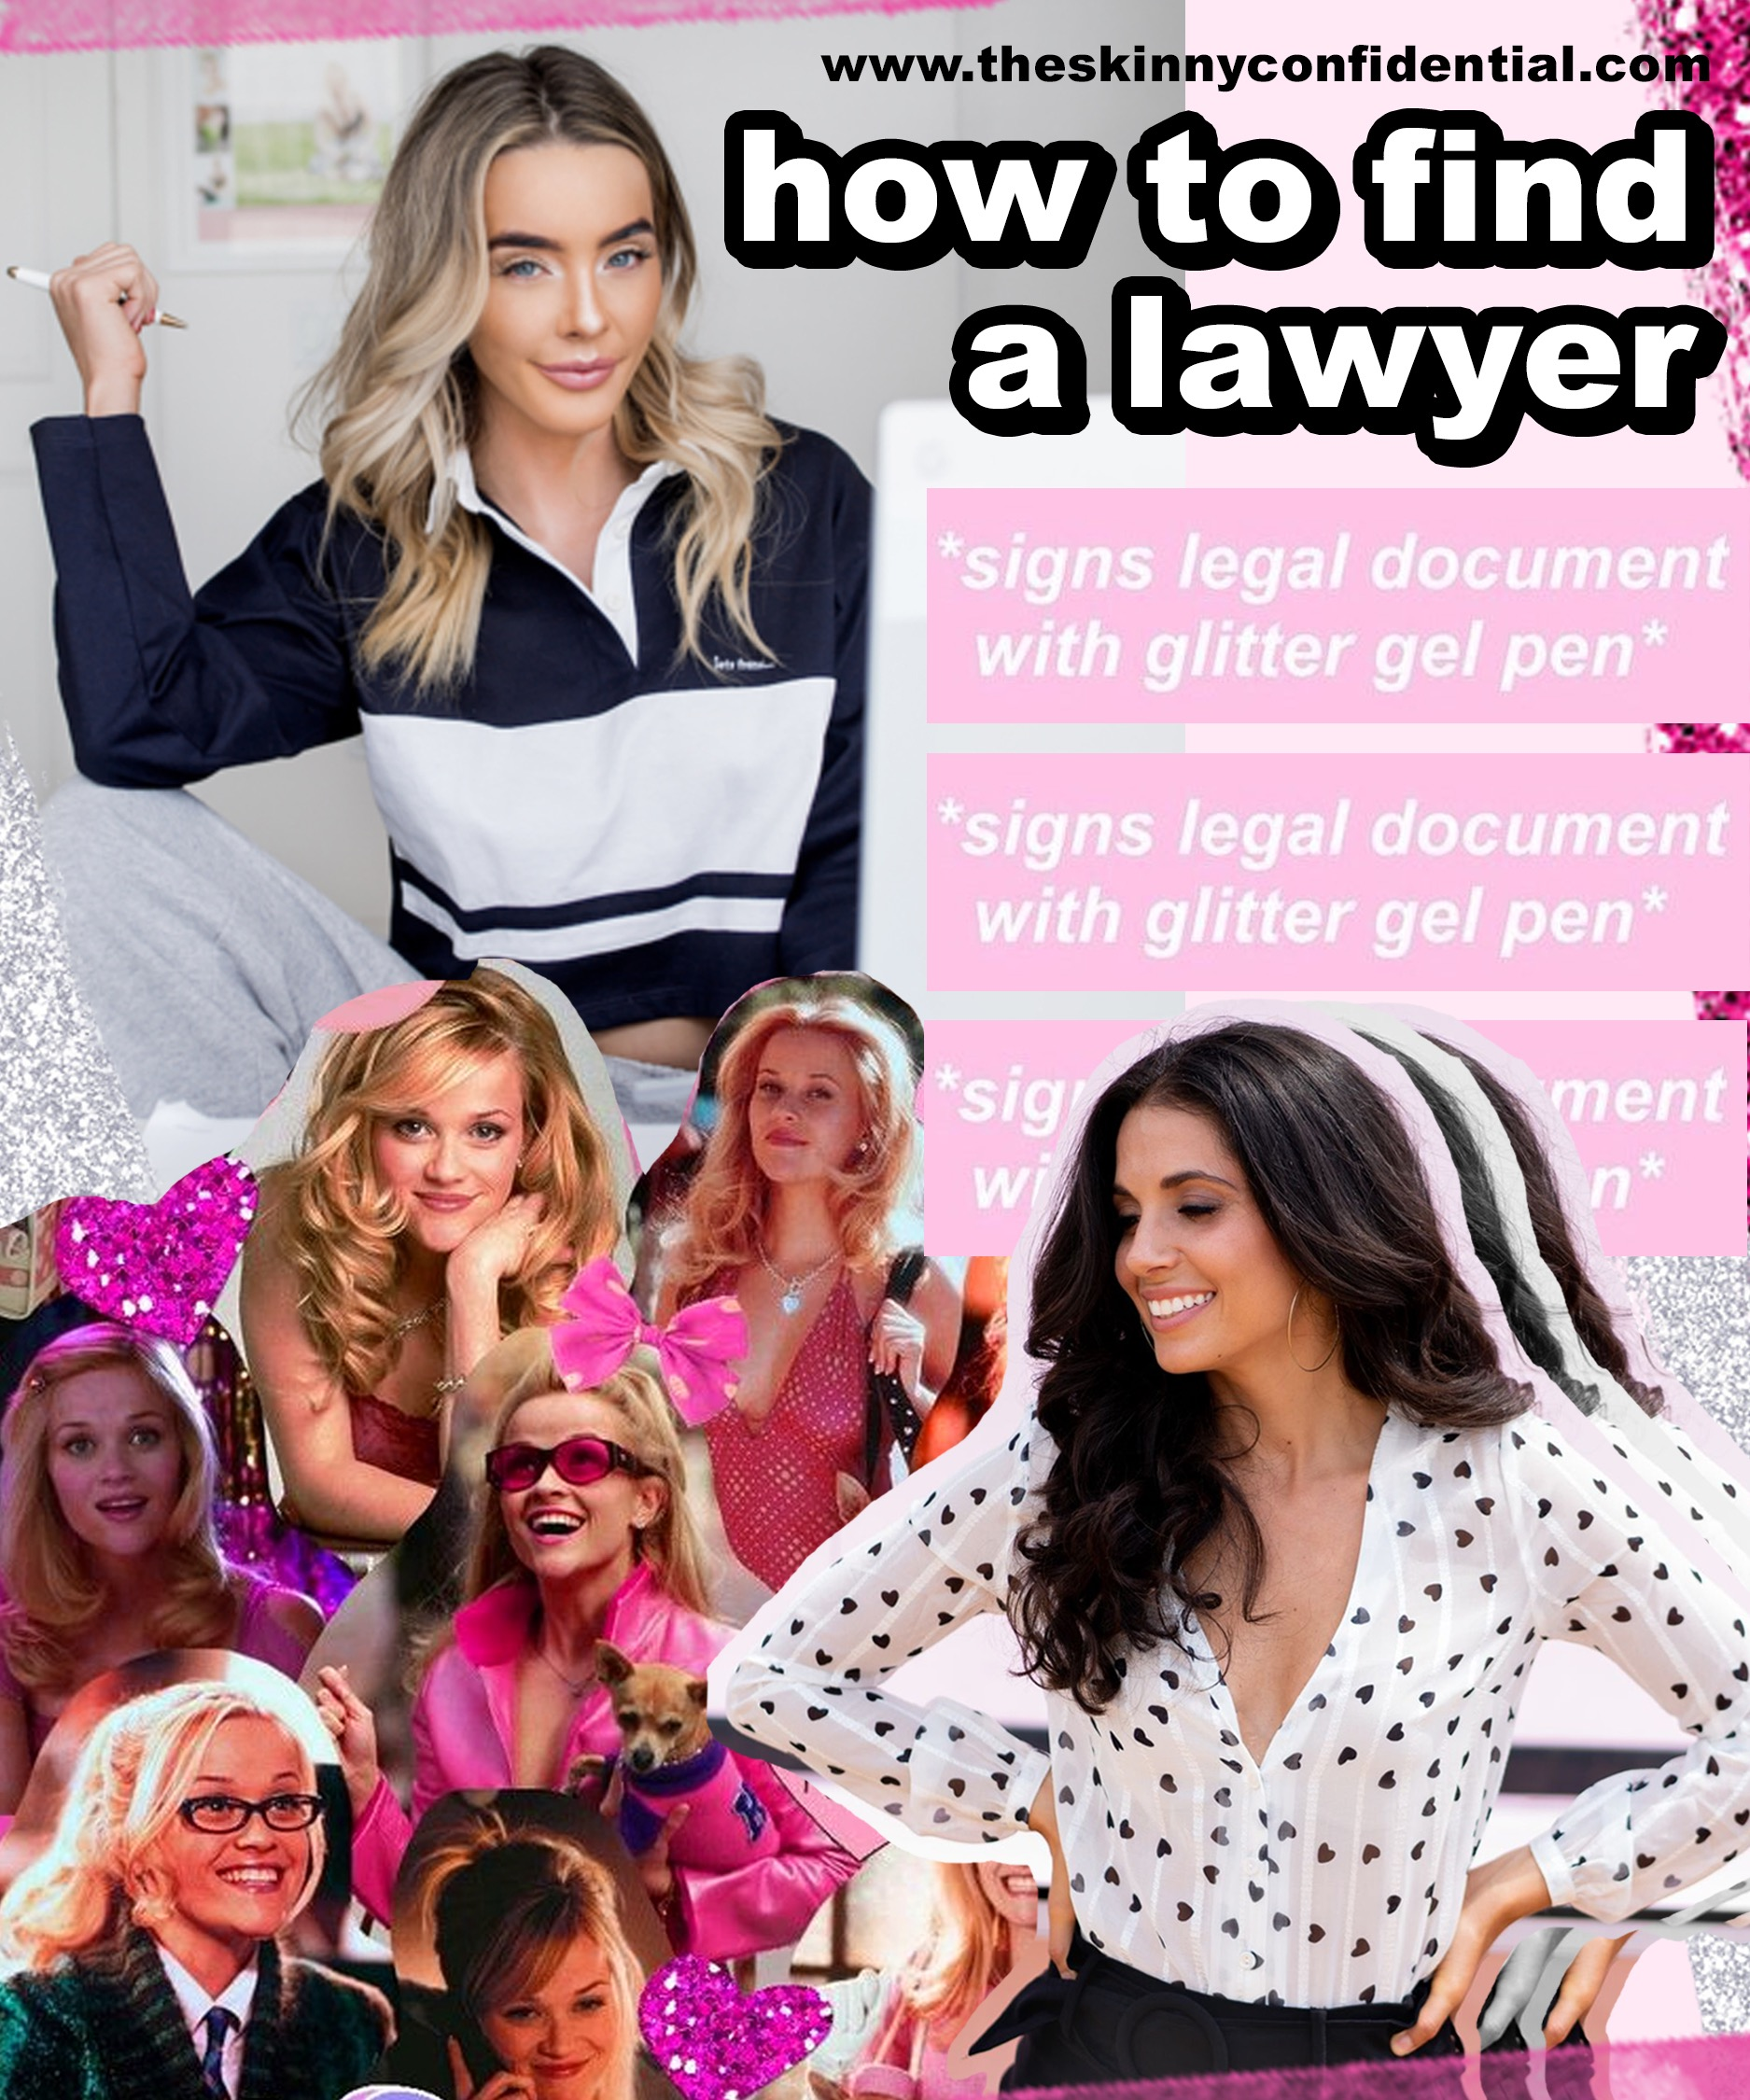 How To Find a Good Lawyer (For The Bossy Bitch)